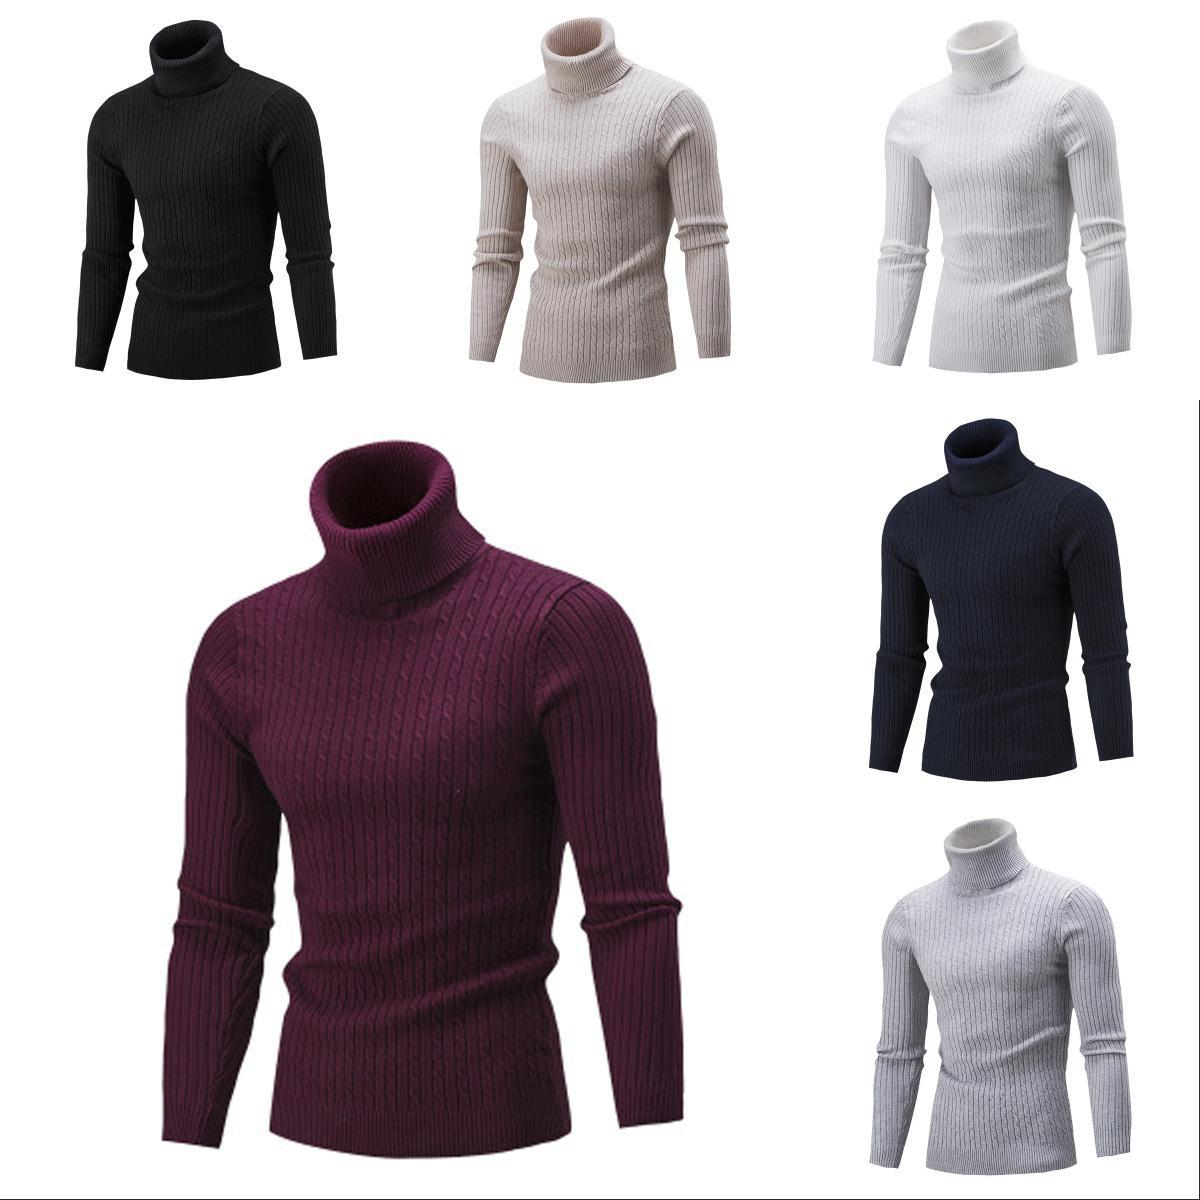 Mens Designer Sweater Boys High Collar Solid Color Bottoming Shirt Youth Casual Tops 2019 Autumn Brand Clothes 2020 For Wholesale